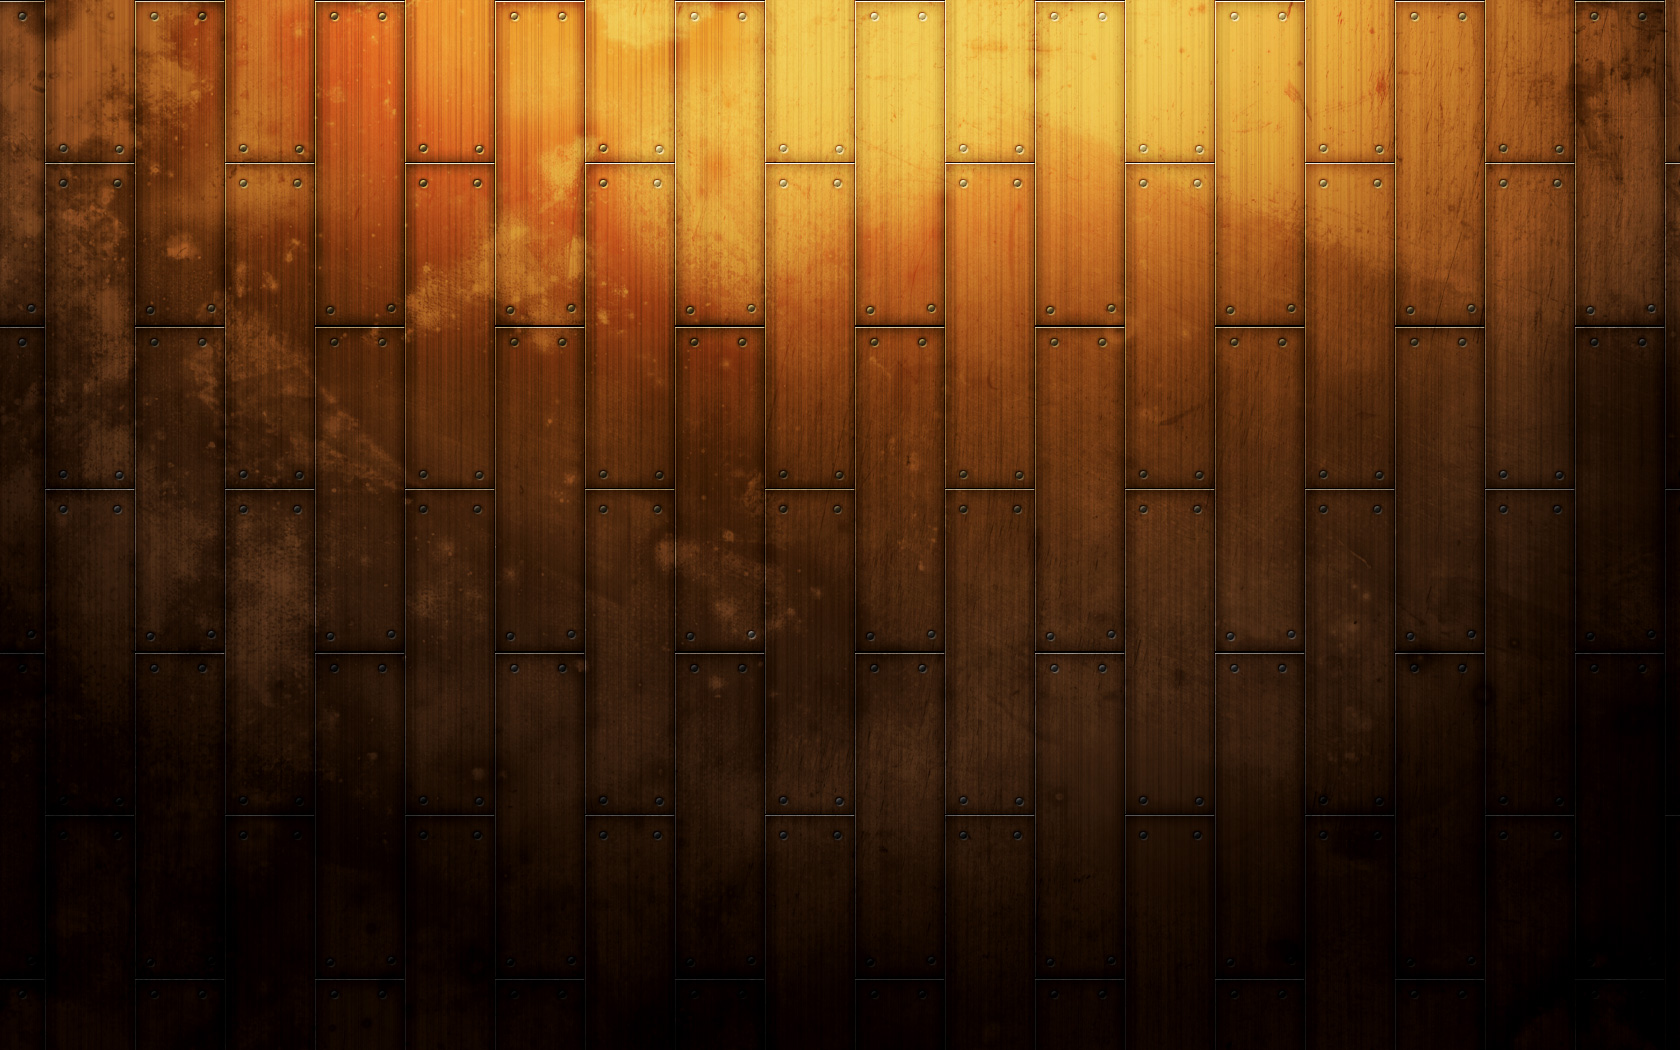 Wood Photoshop Backgrounds Designs